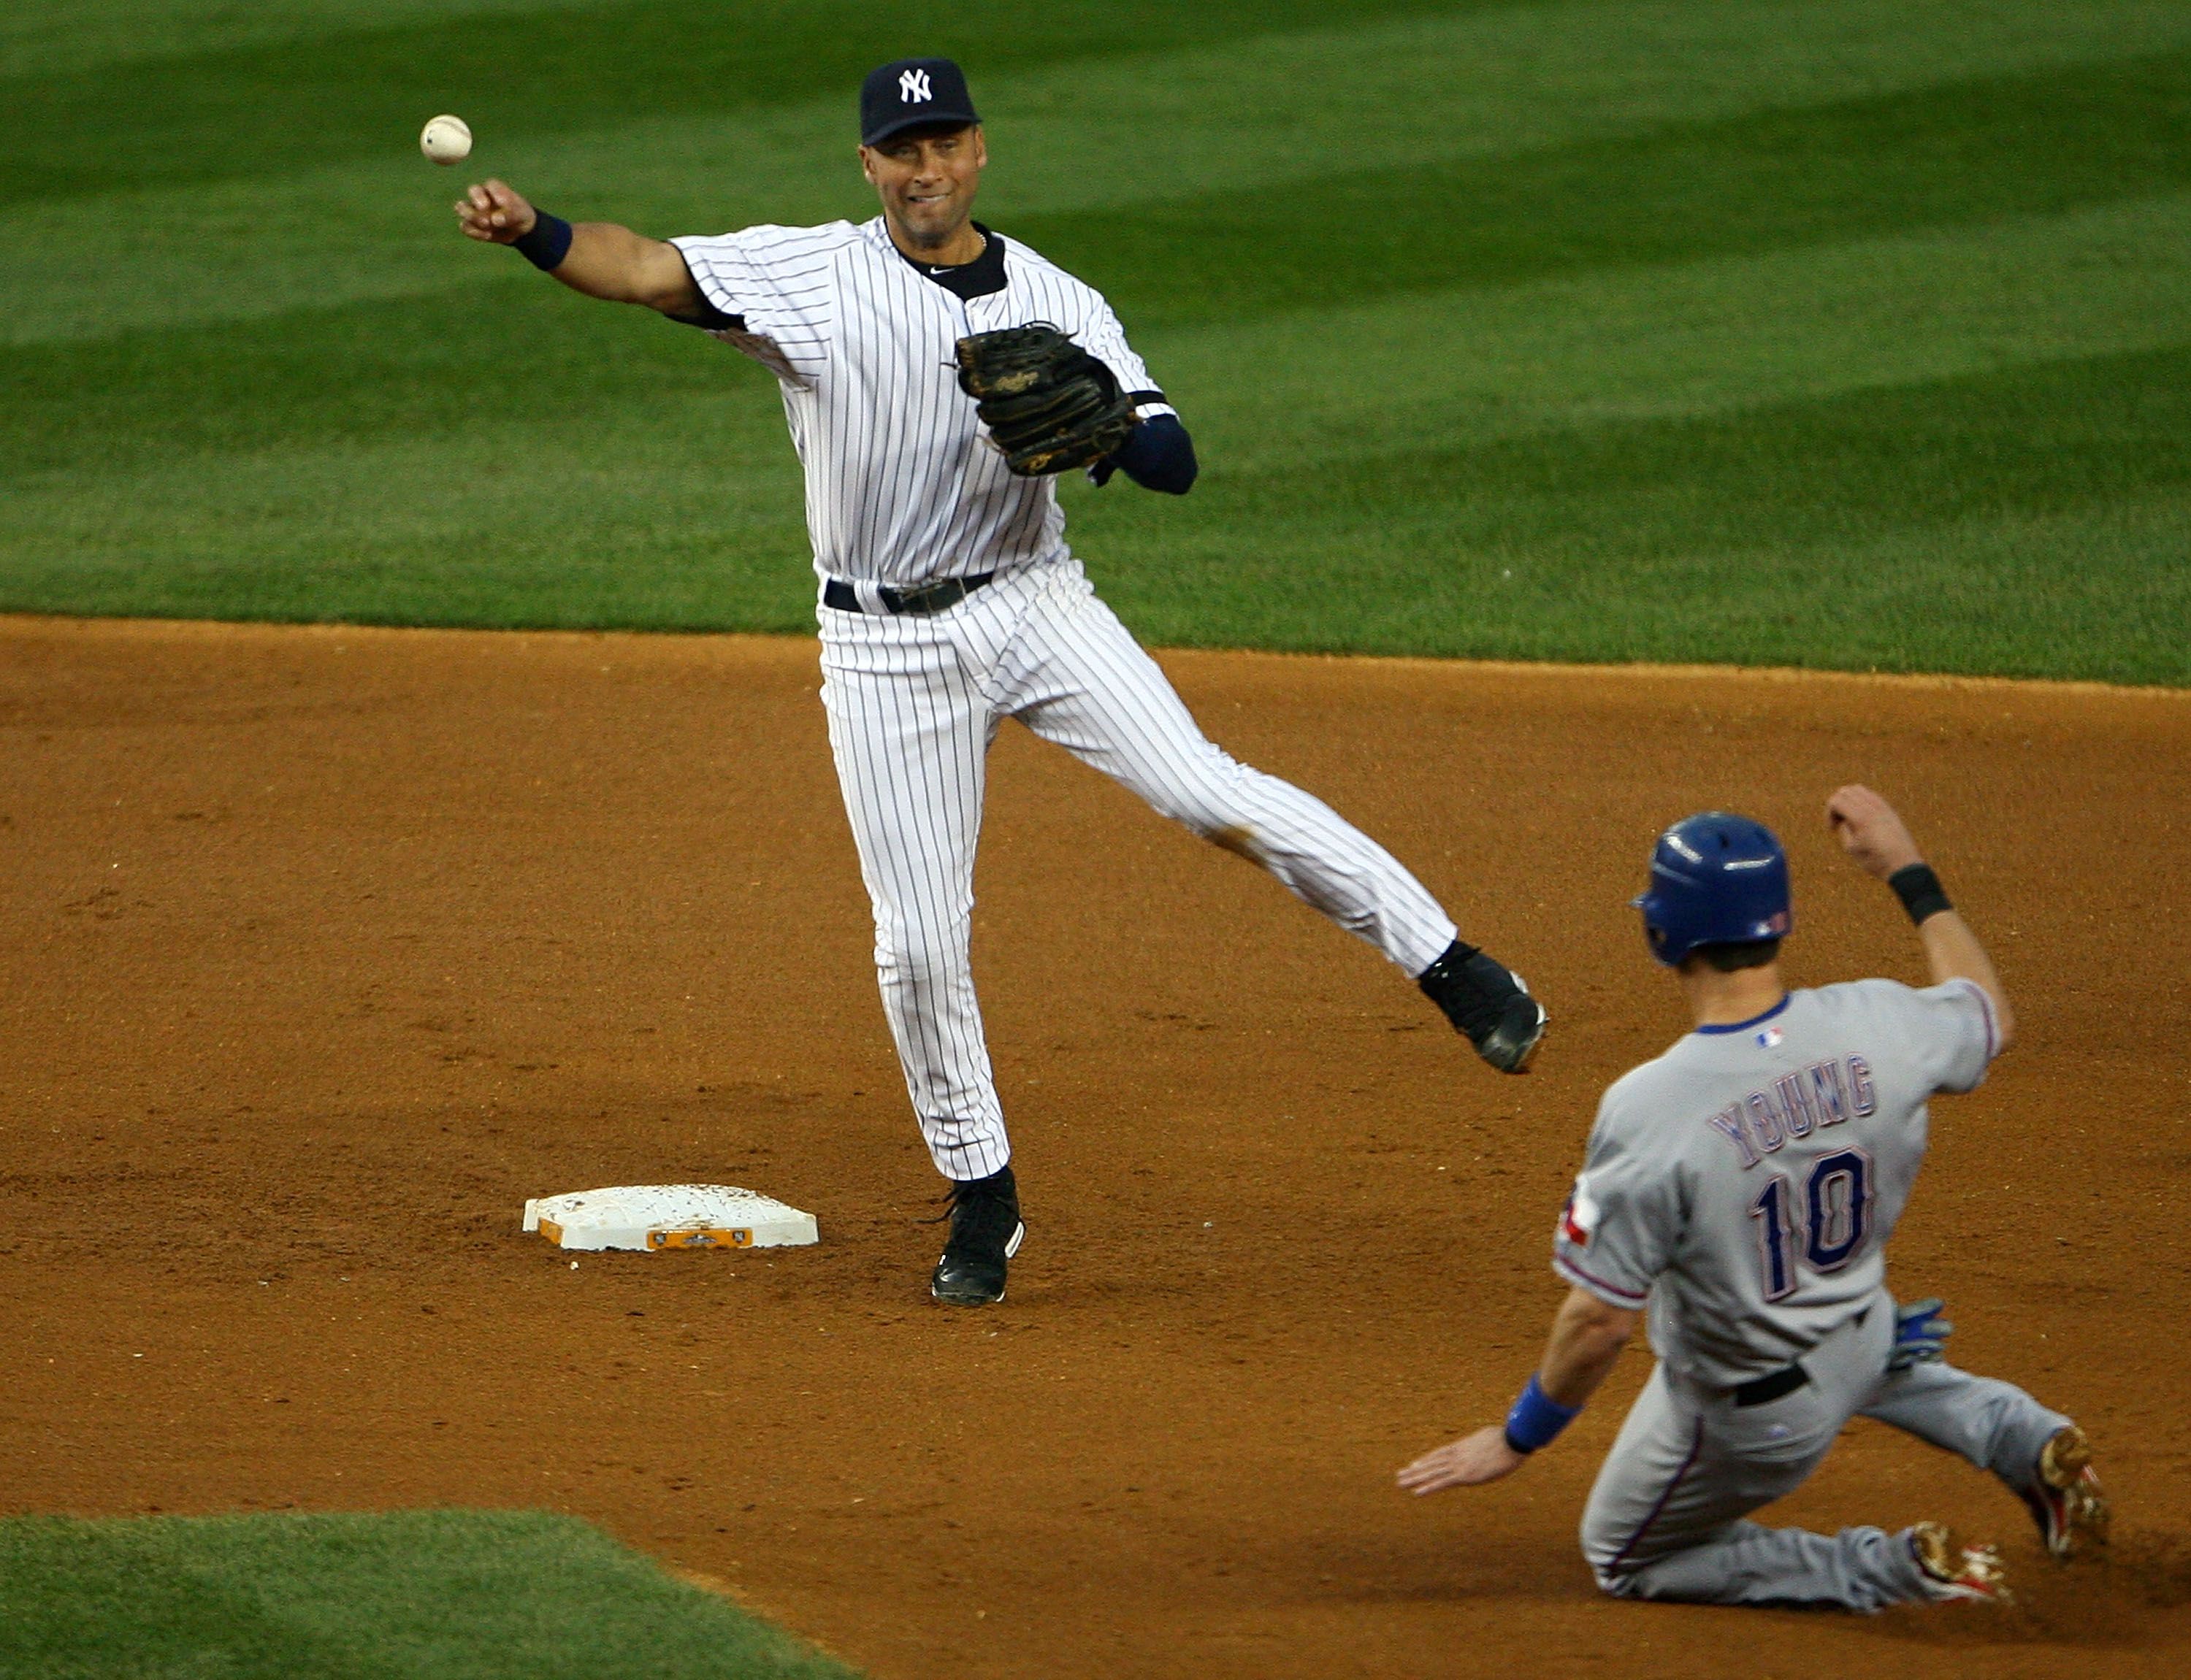 NEW YORK - OCTOBER 20:  Derek Jeter #2 of the New York Yankees turns a successful double play over a sliding Michael Young #10 of the Texas Rangers on a ball hit by Josh Hamilton #32 in the top of the fifth inning of Game Five of the ALCS during the 2010